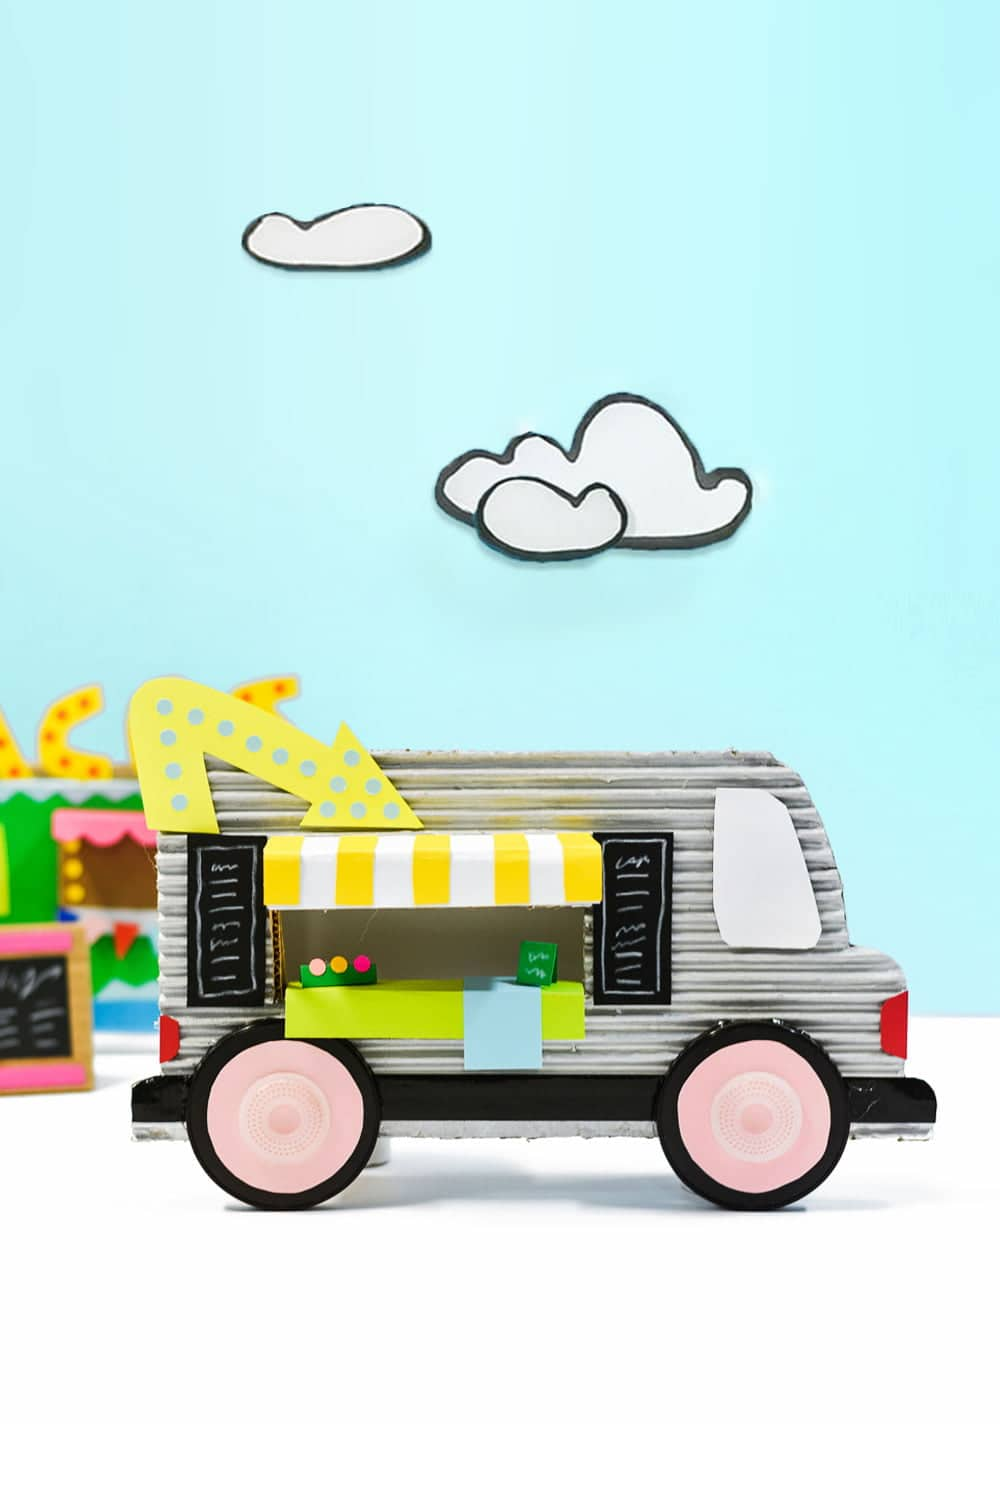 Design your own adorable food truck with cardboard, paper and recycled bits and pieces - a creative kids art project! | via barley & birch